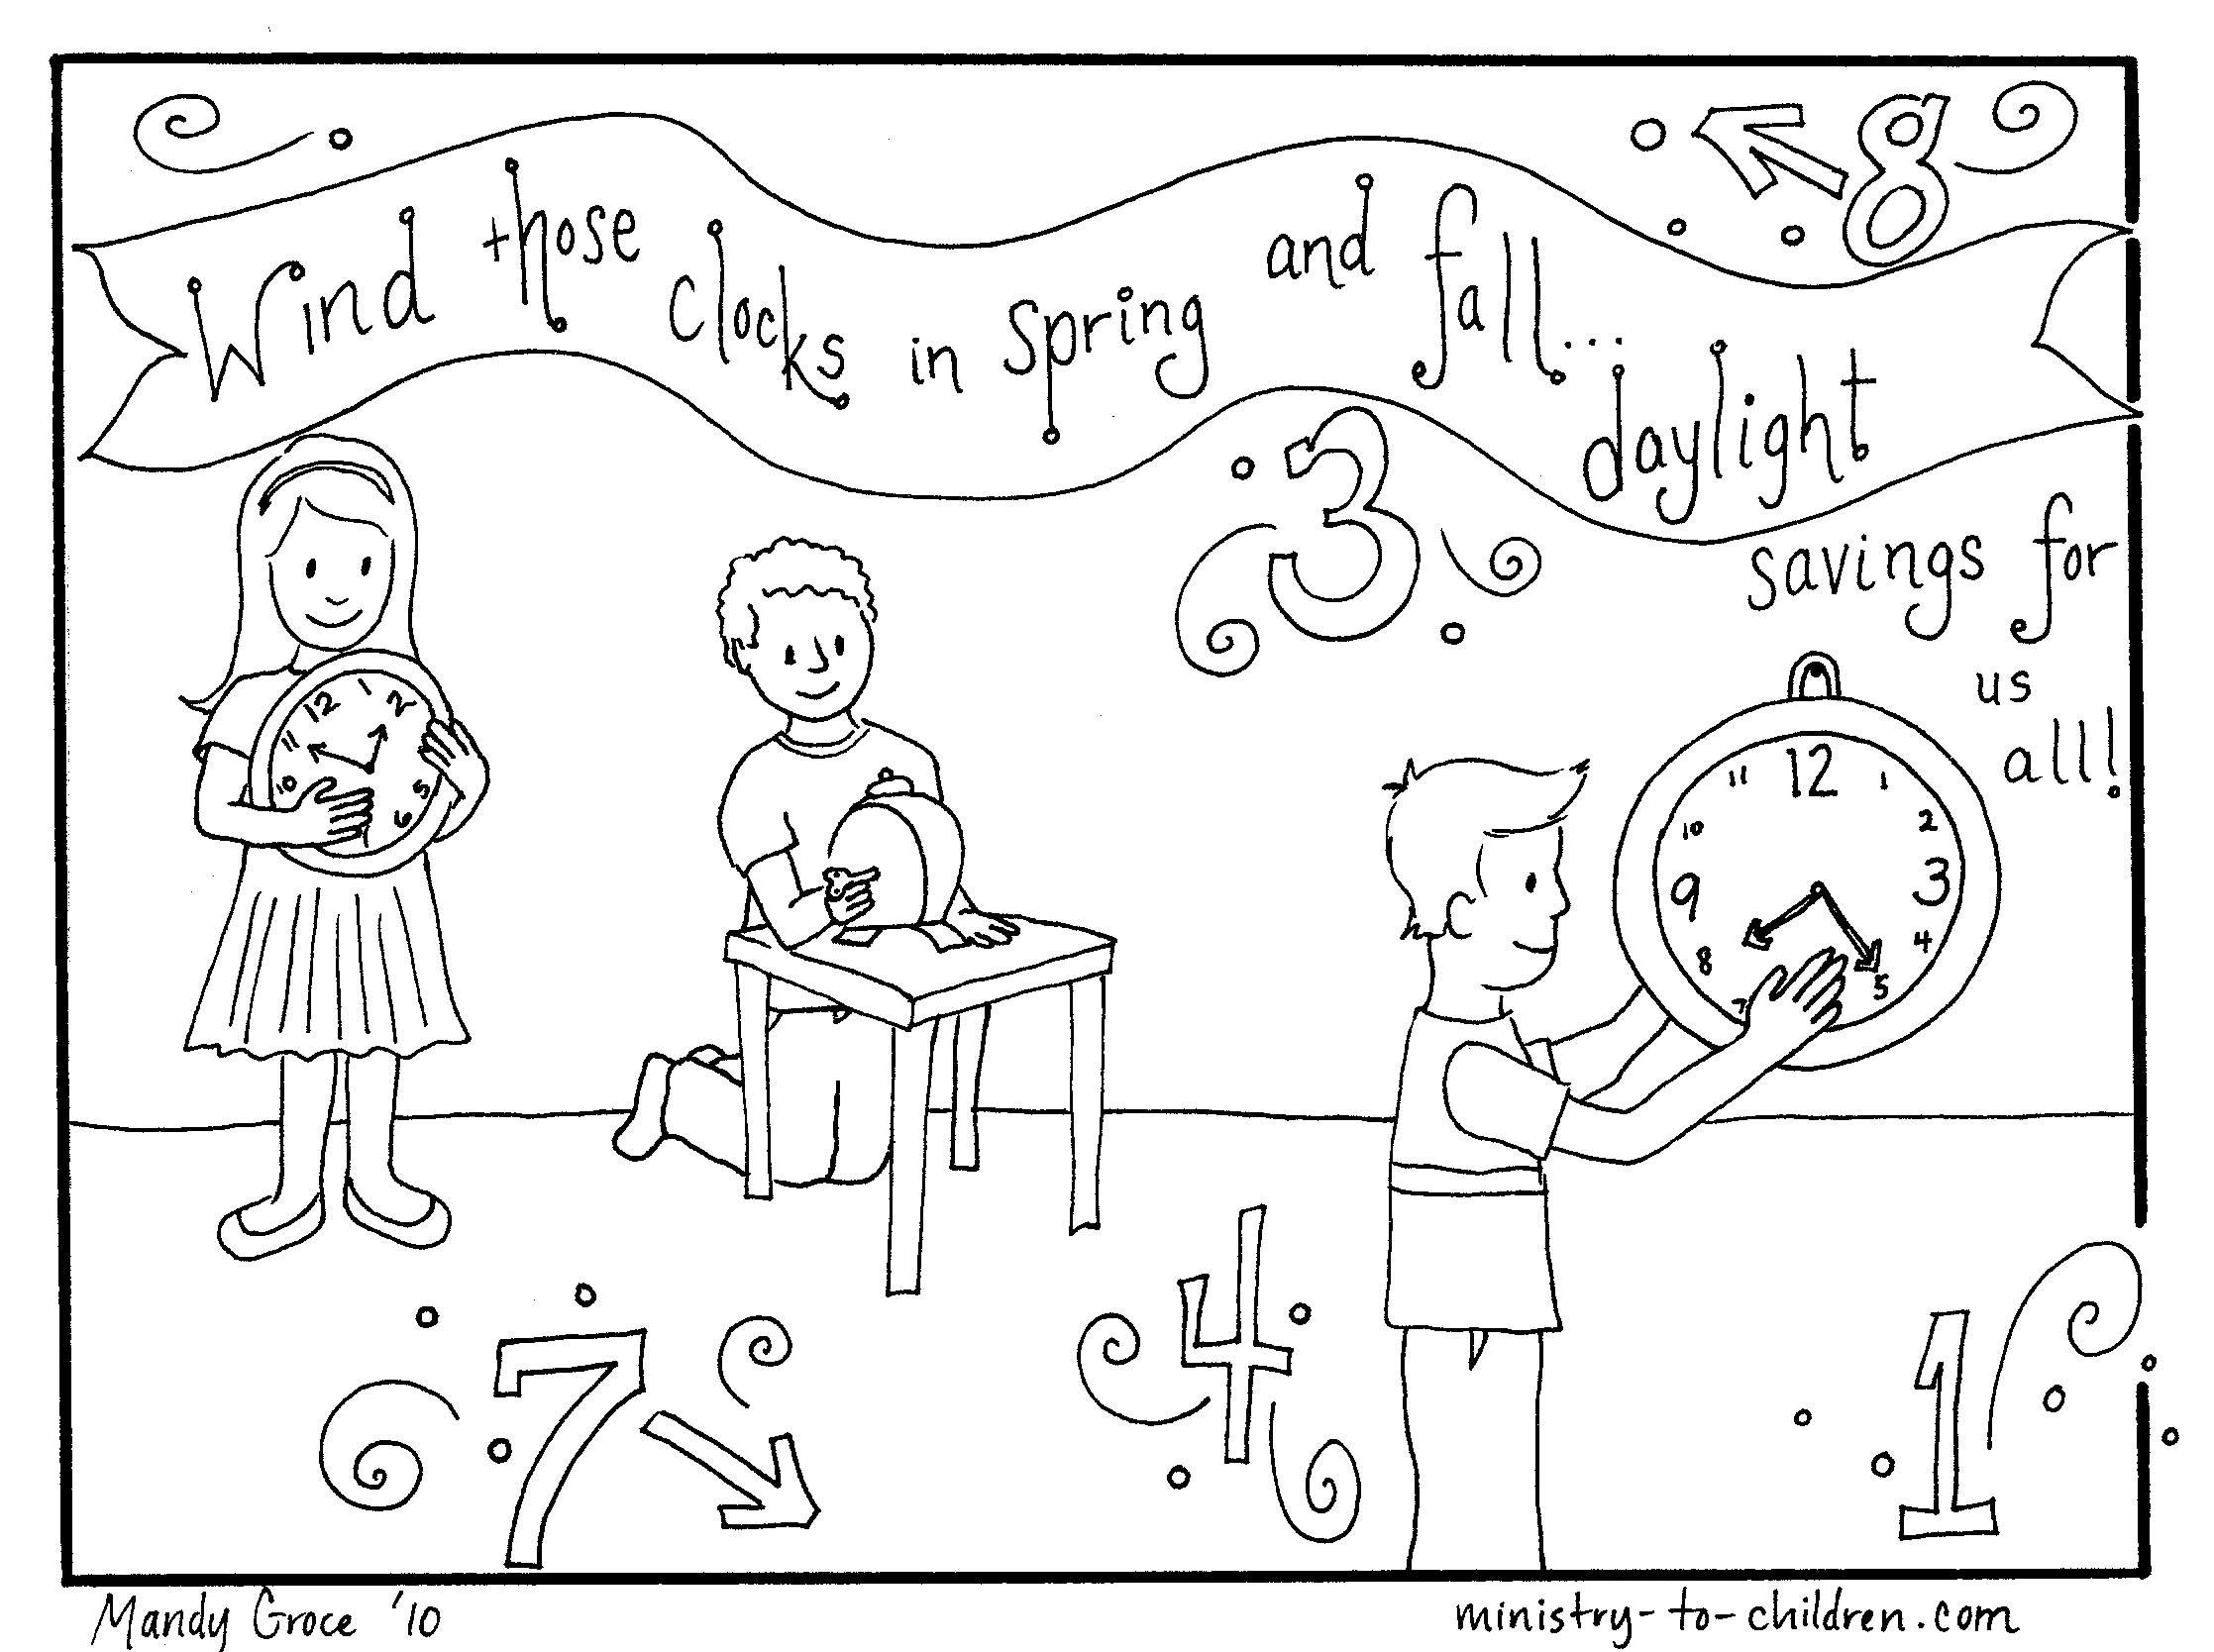 Coloring page about daylight savings time http://ministry